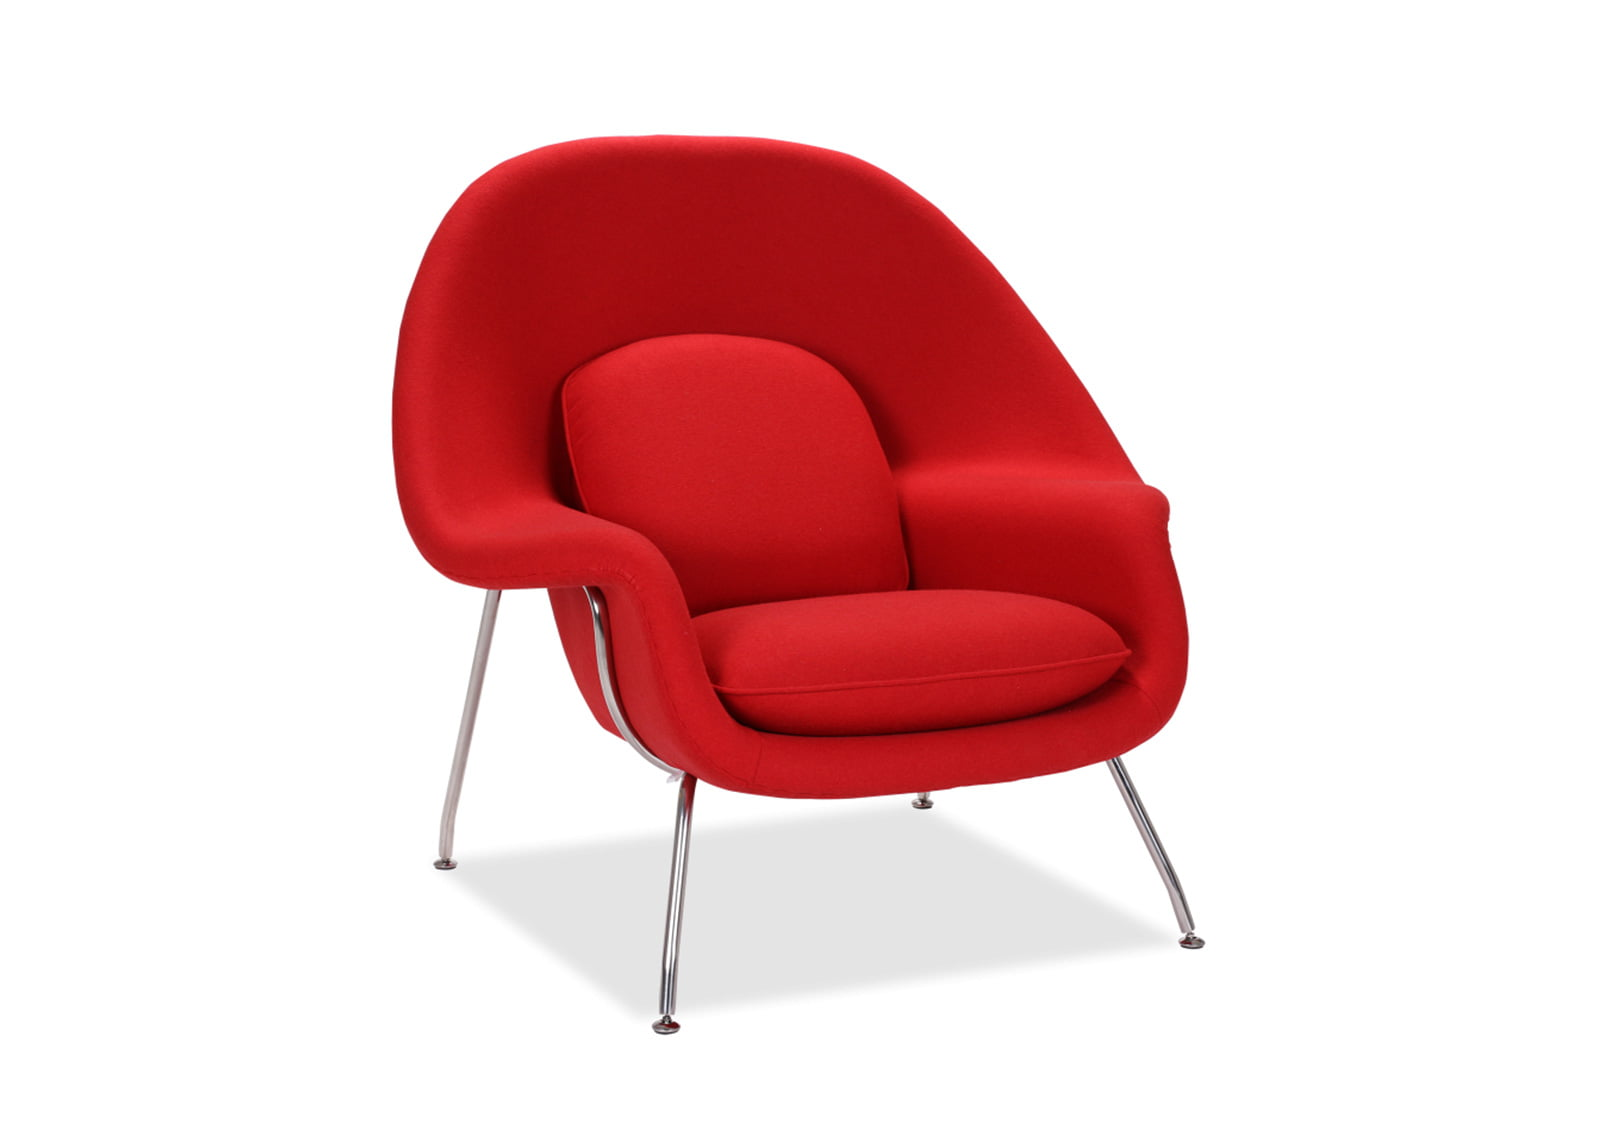 Side Arm Chair Womb Chair & Ottoman | Furnishplus